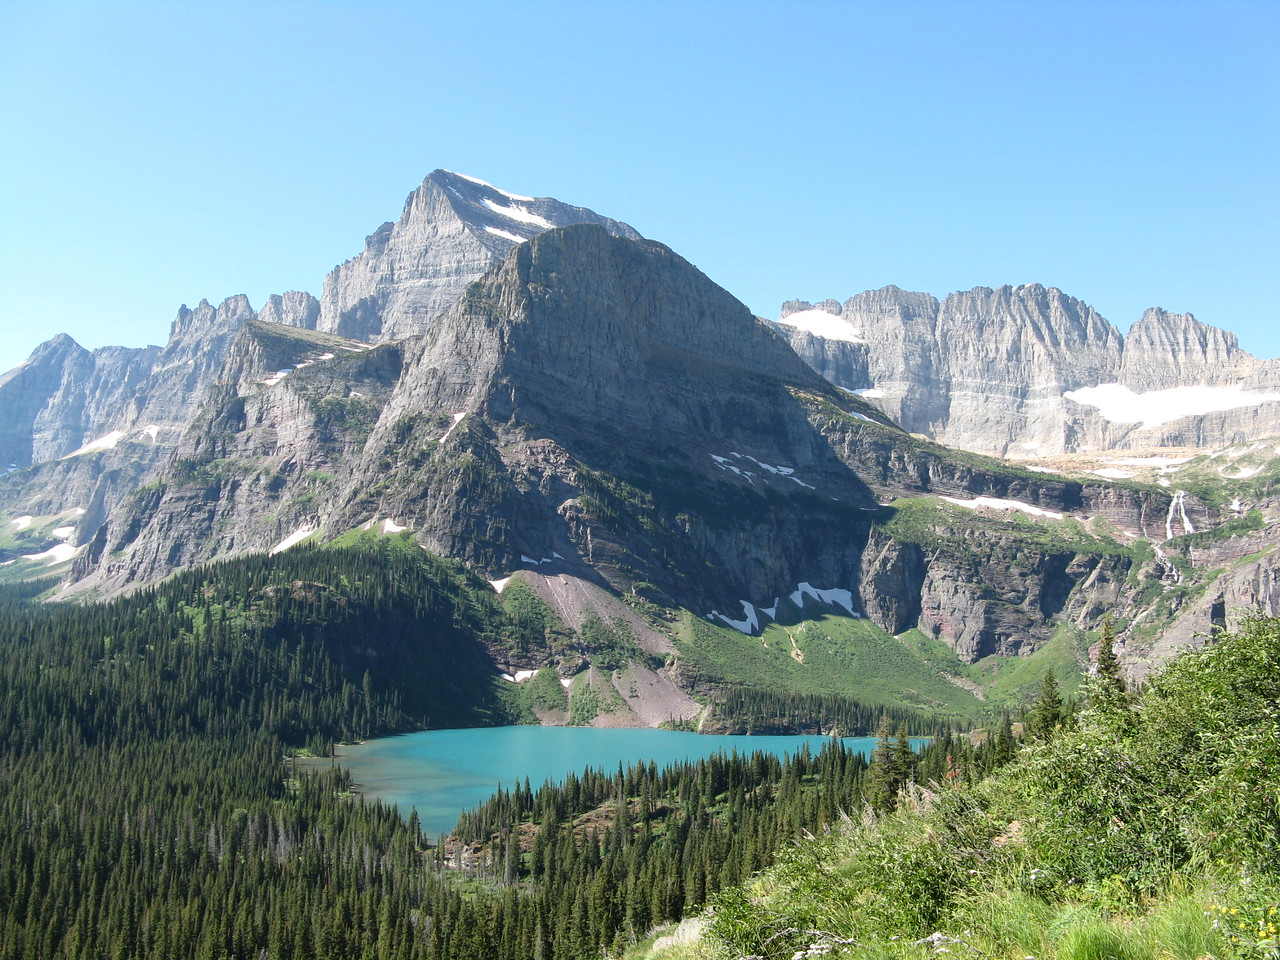 Mount Gould above Grinnell Lake.